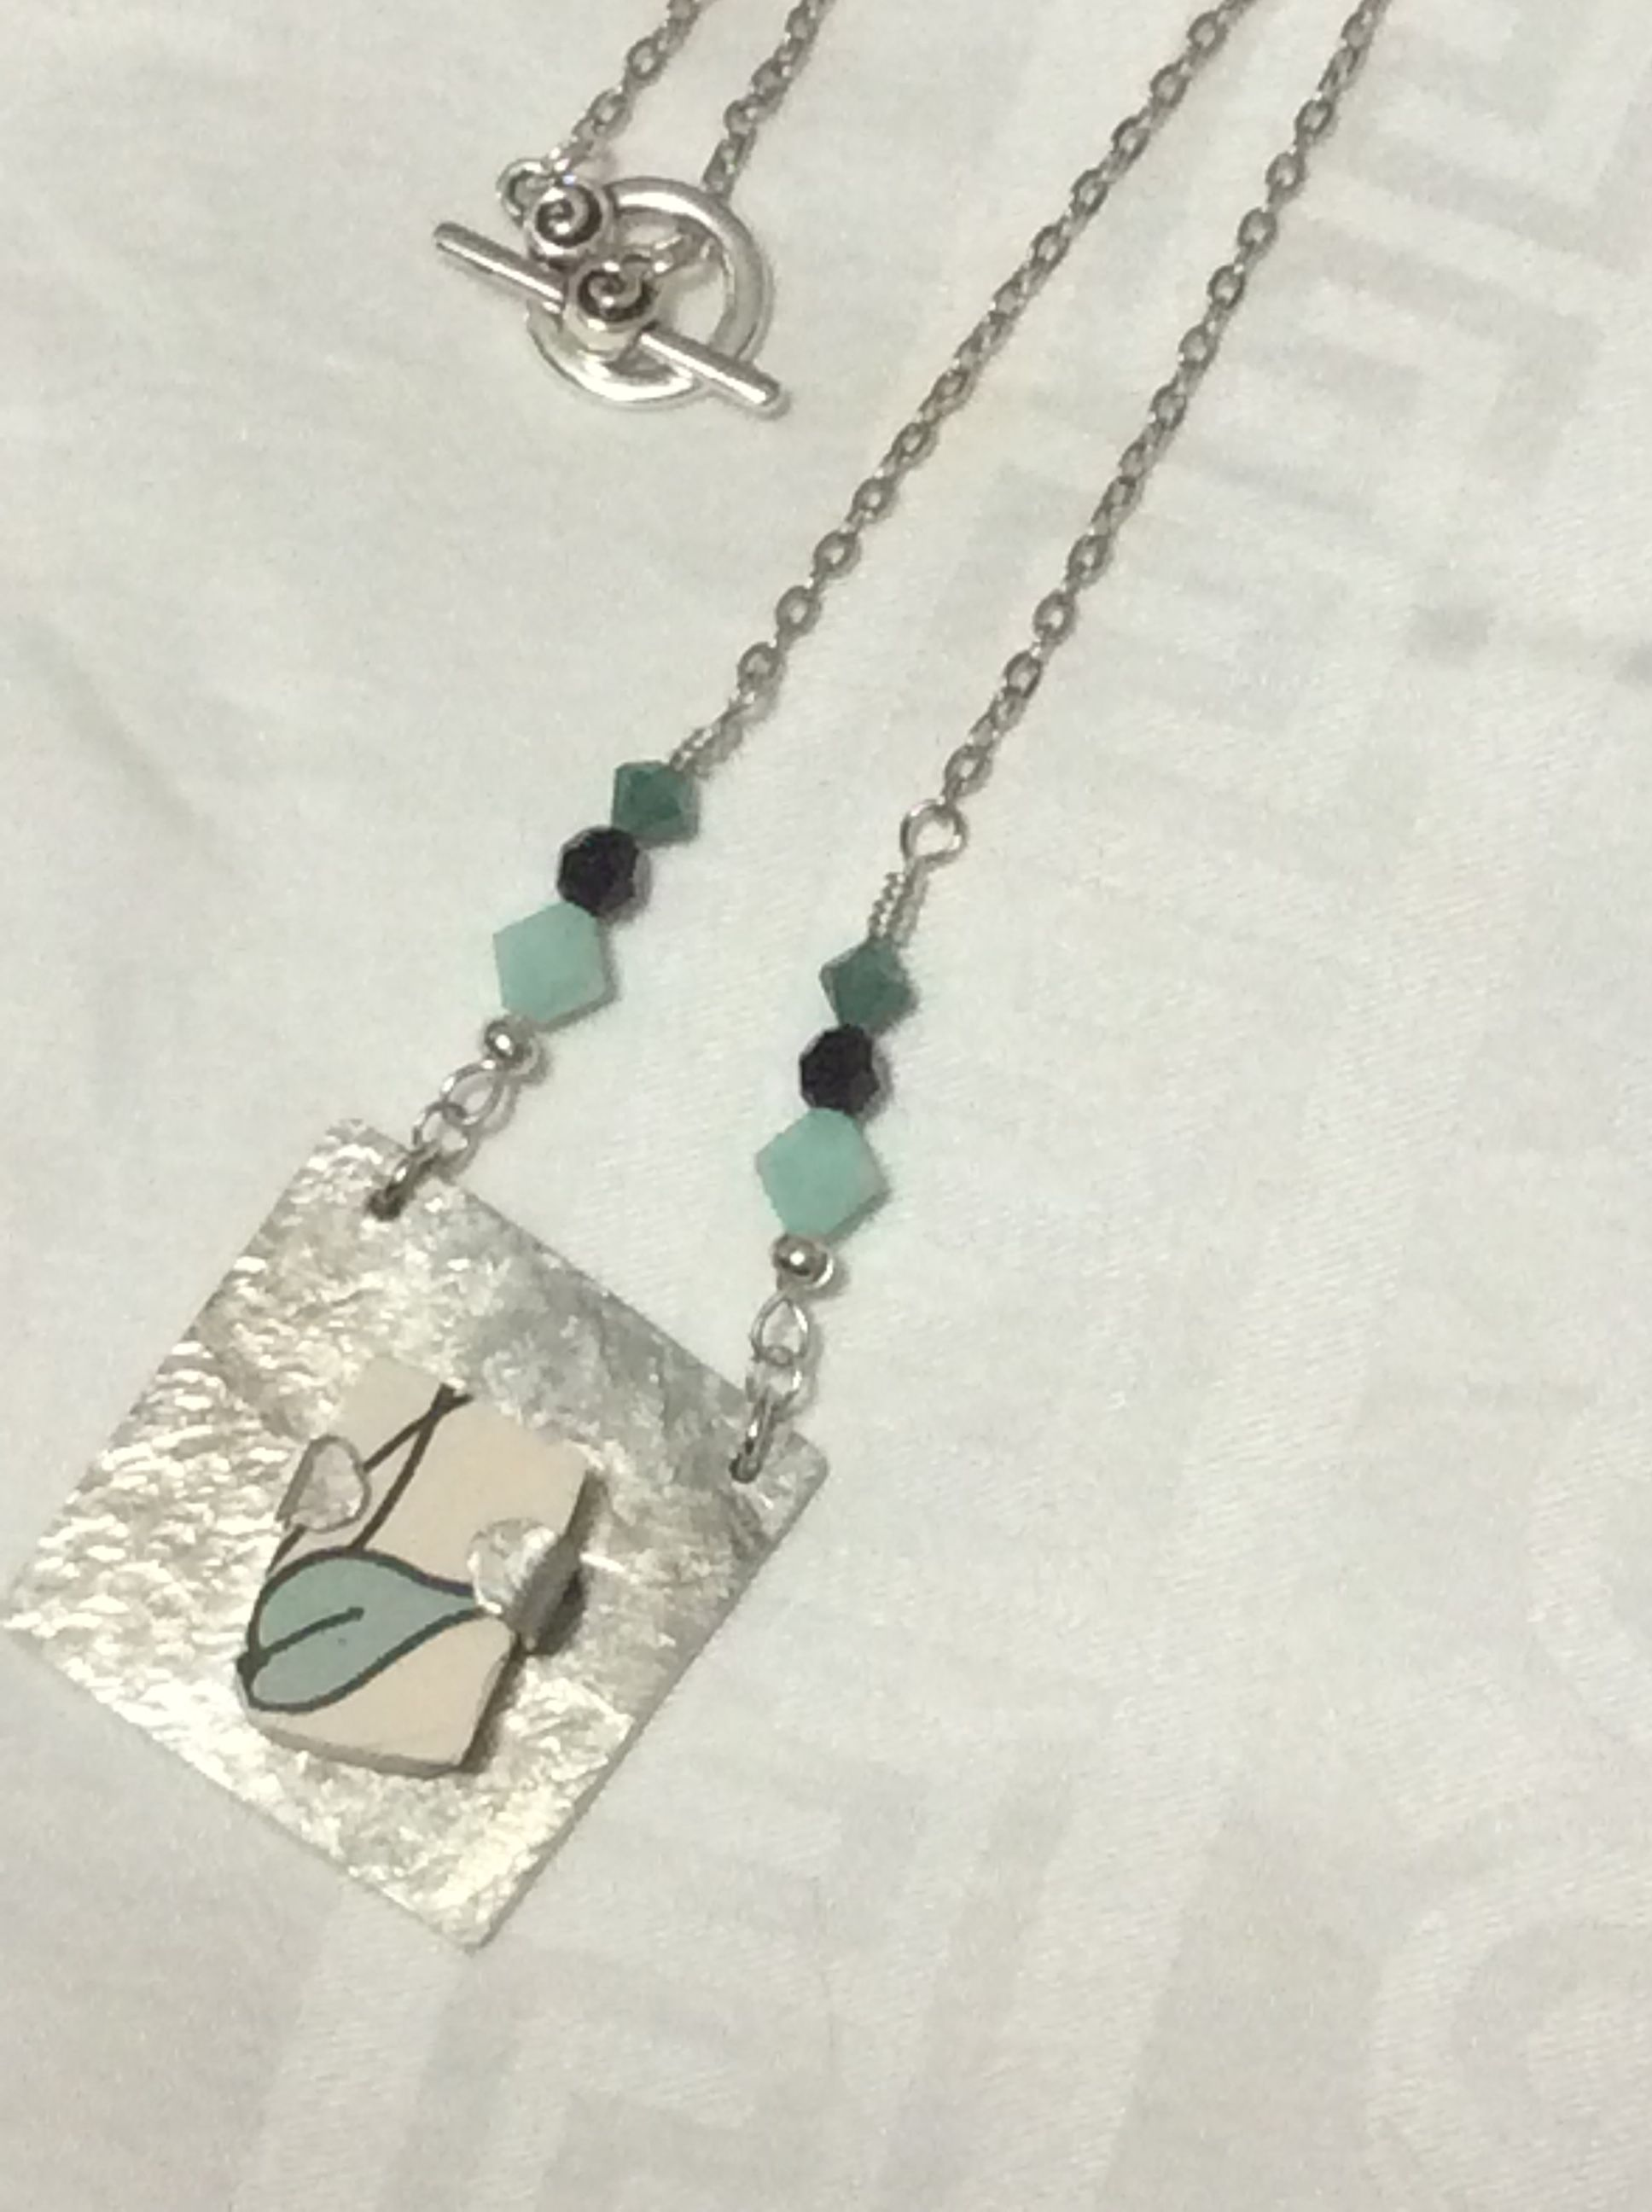 Pewter, ceramic, Swarovski crystals and plated metal necklace.